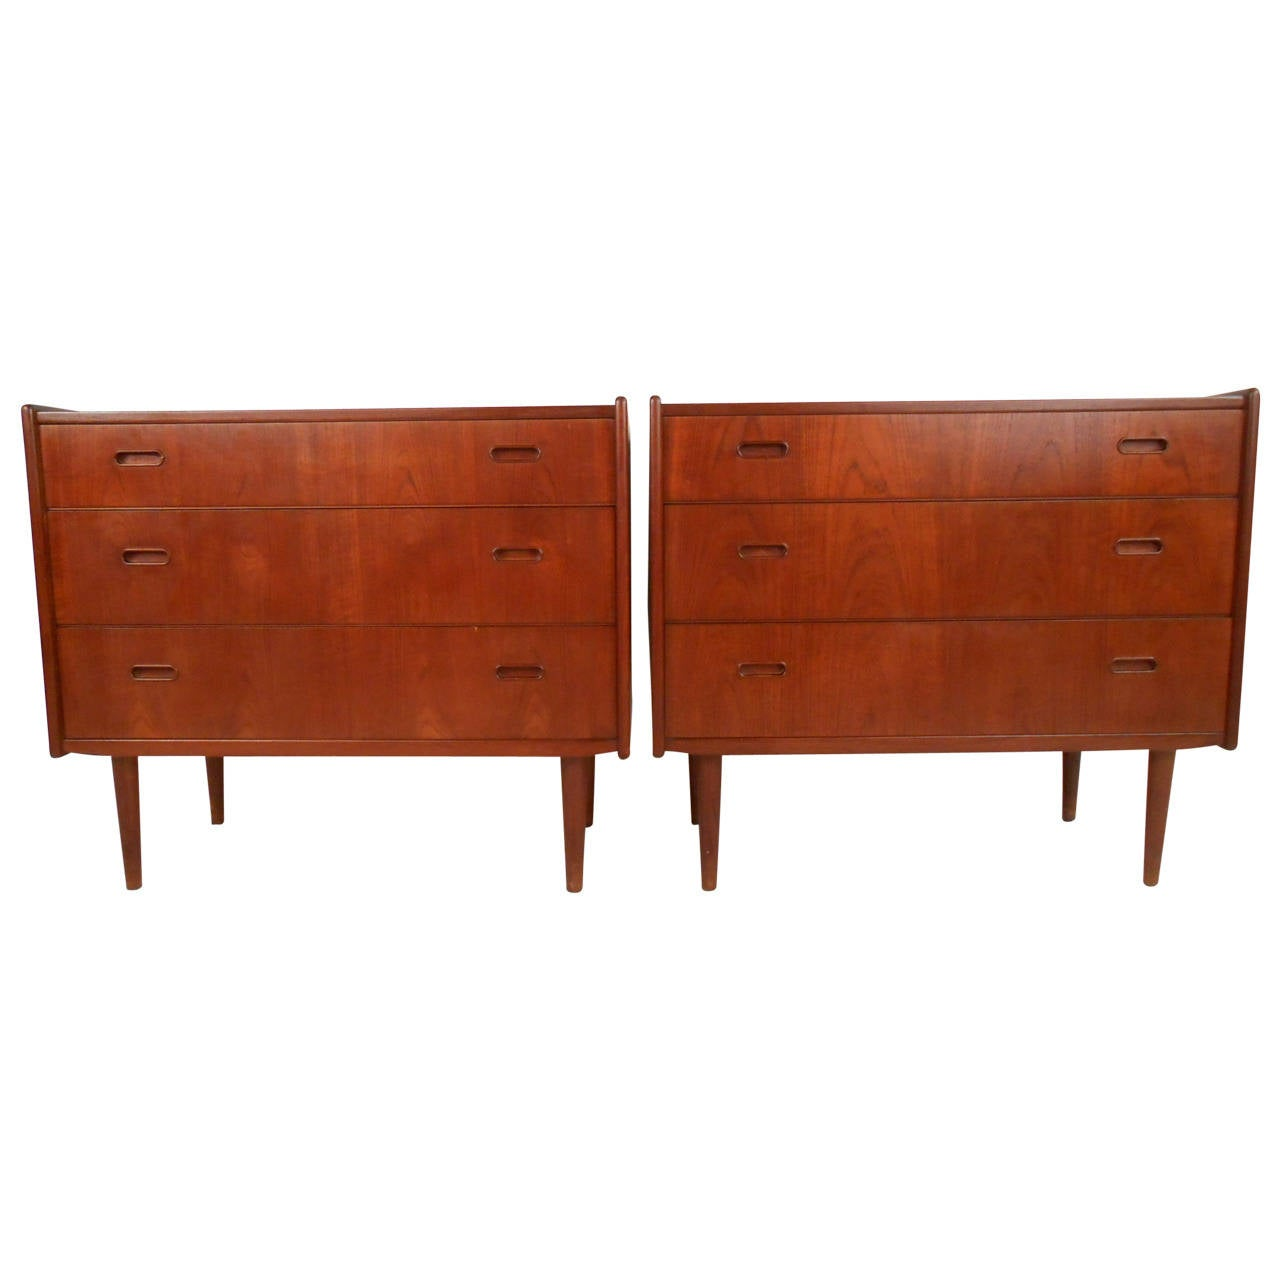 Pair of mid century modern danish teak bedroom dressers Century bedroom furniture